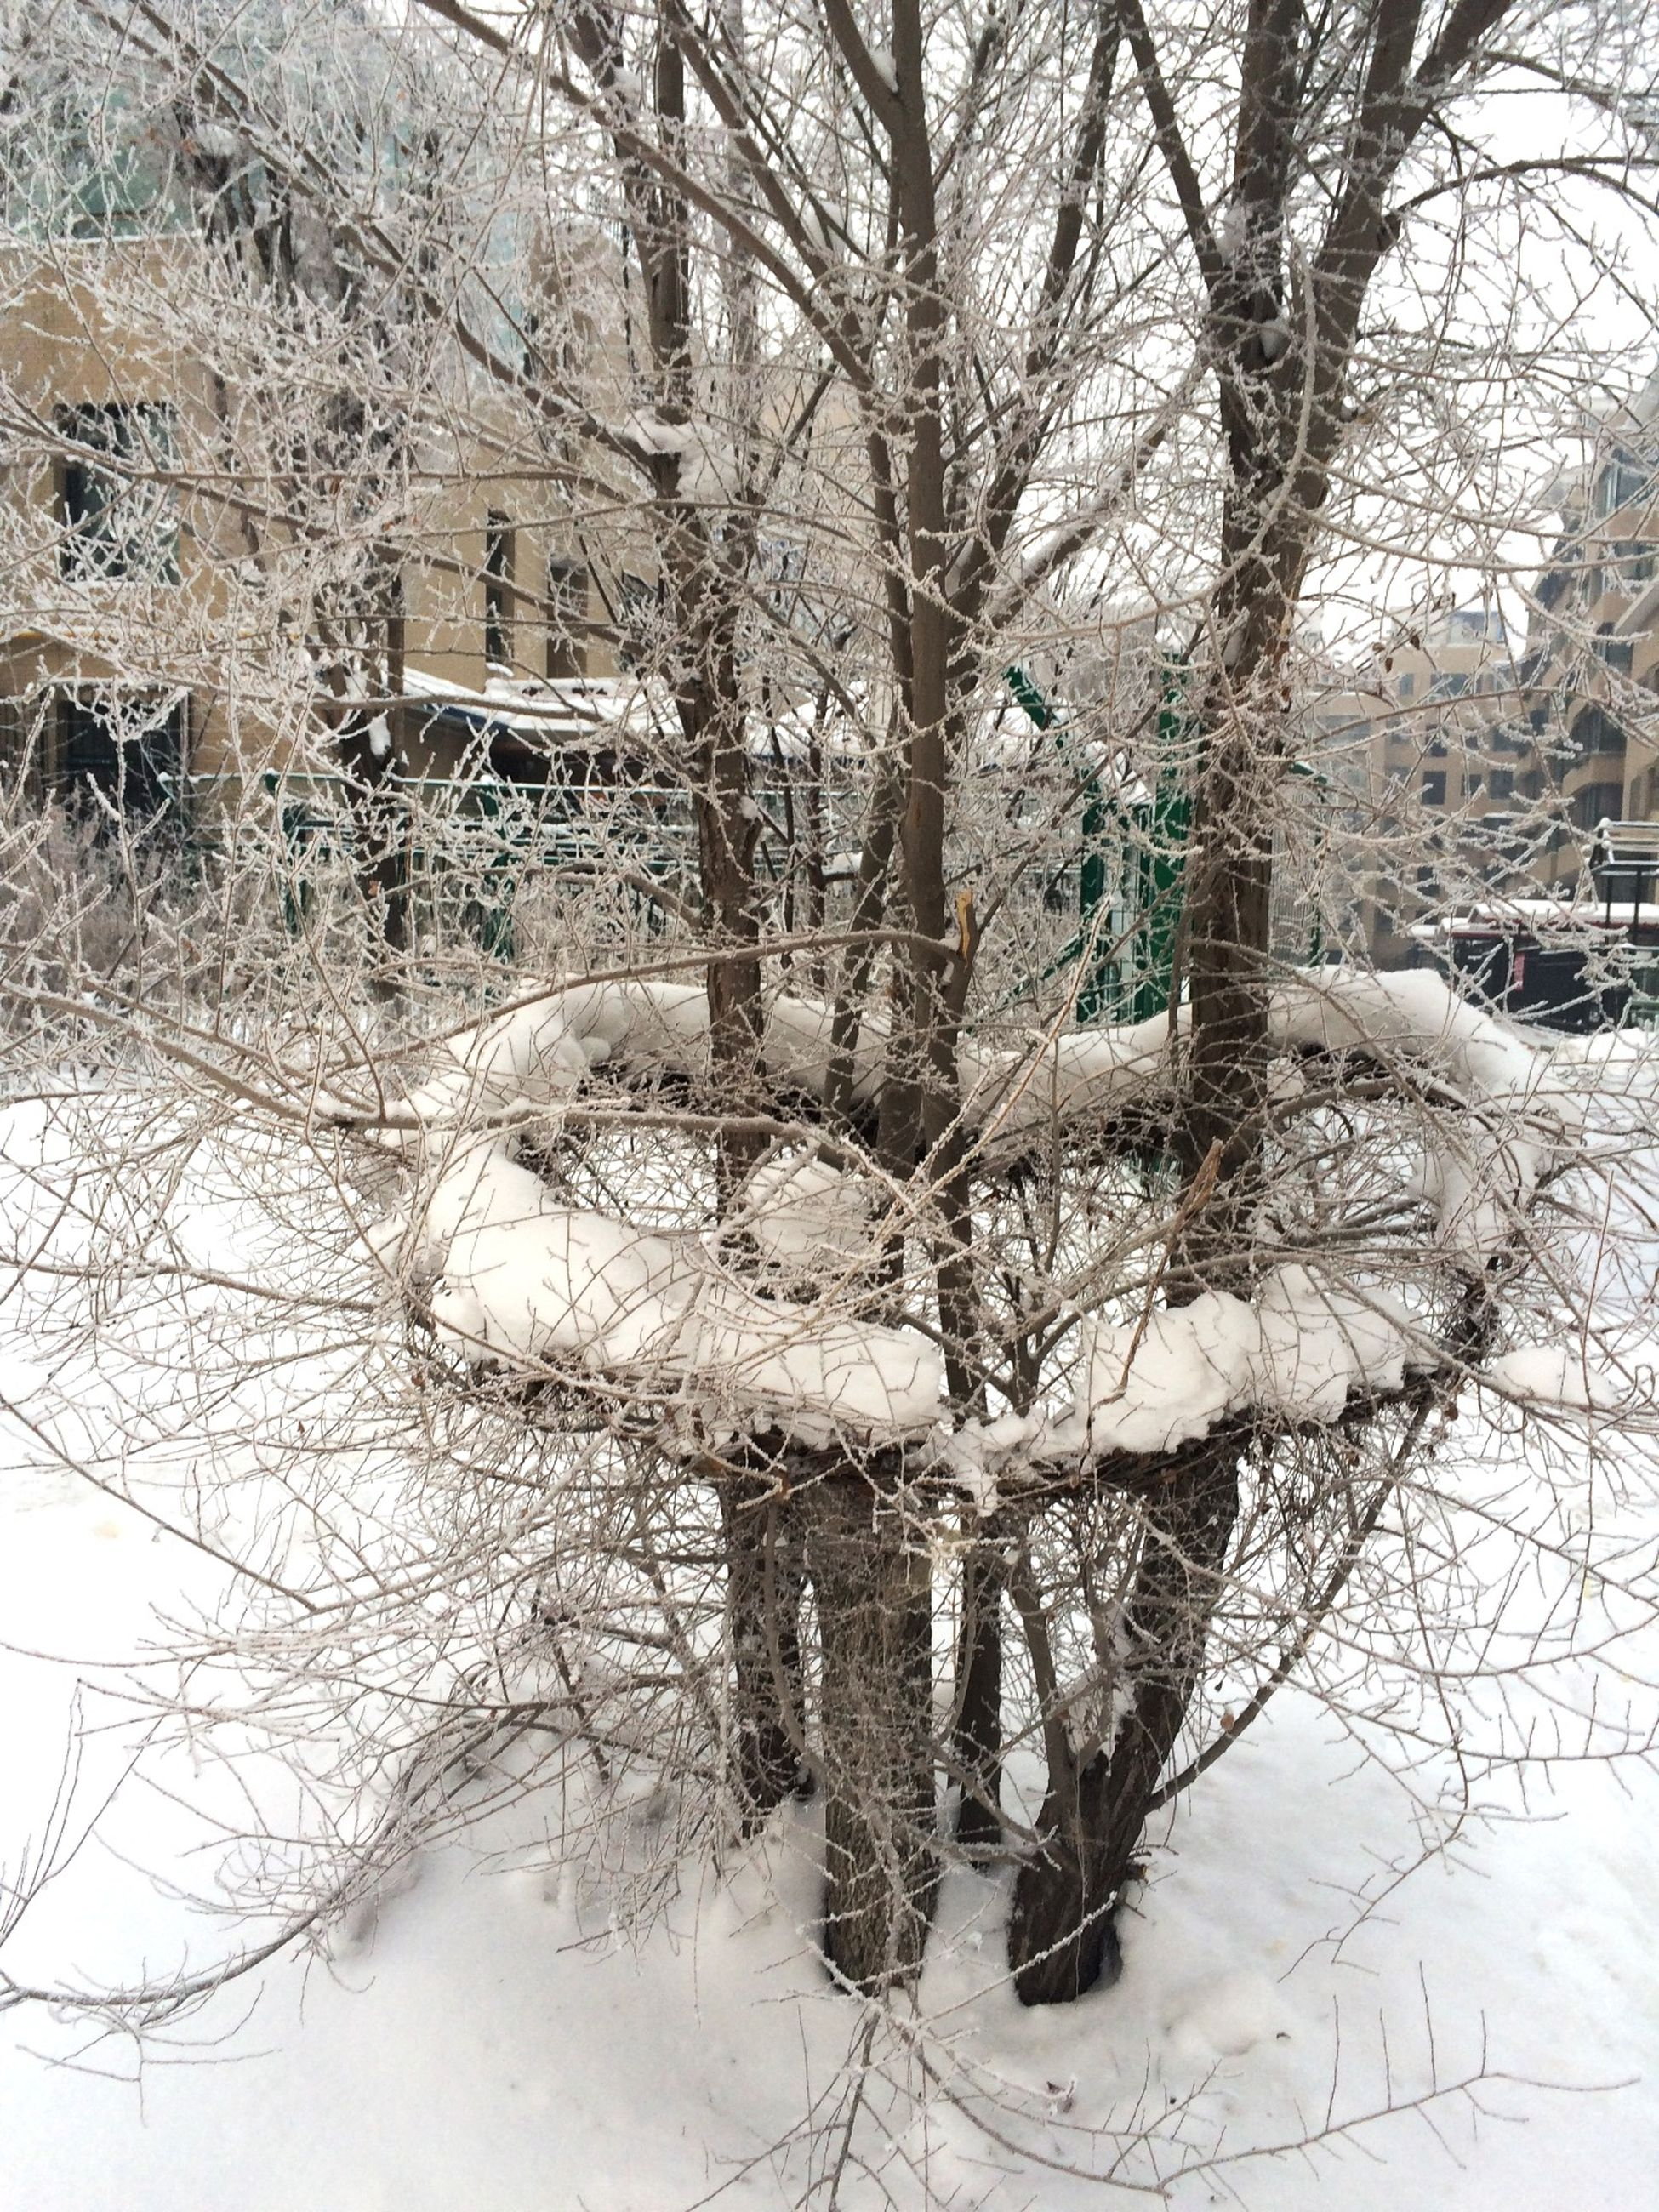 winter, snow, cold temperature, tree, bare tree, season, branch, building exterior, architecture, weather, built structure, nature, frozen, tranquility, covering, tranquil scene, beauty in nature, tree trunk, day, reflection